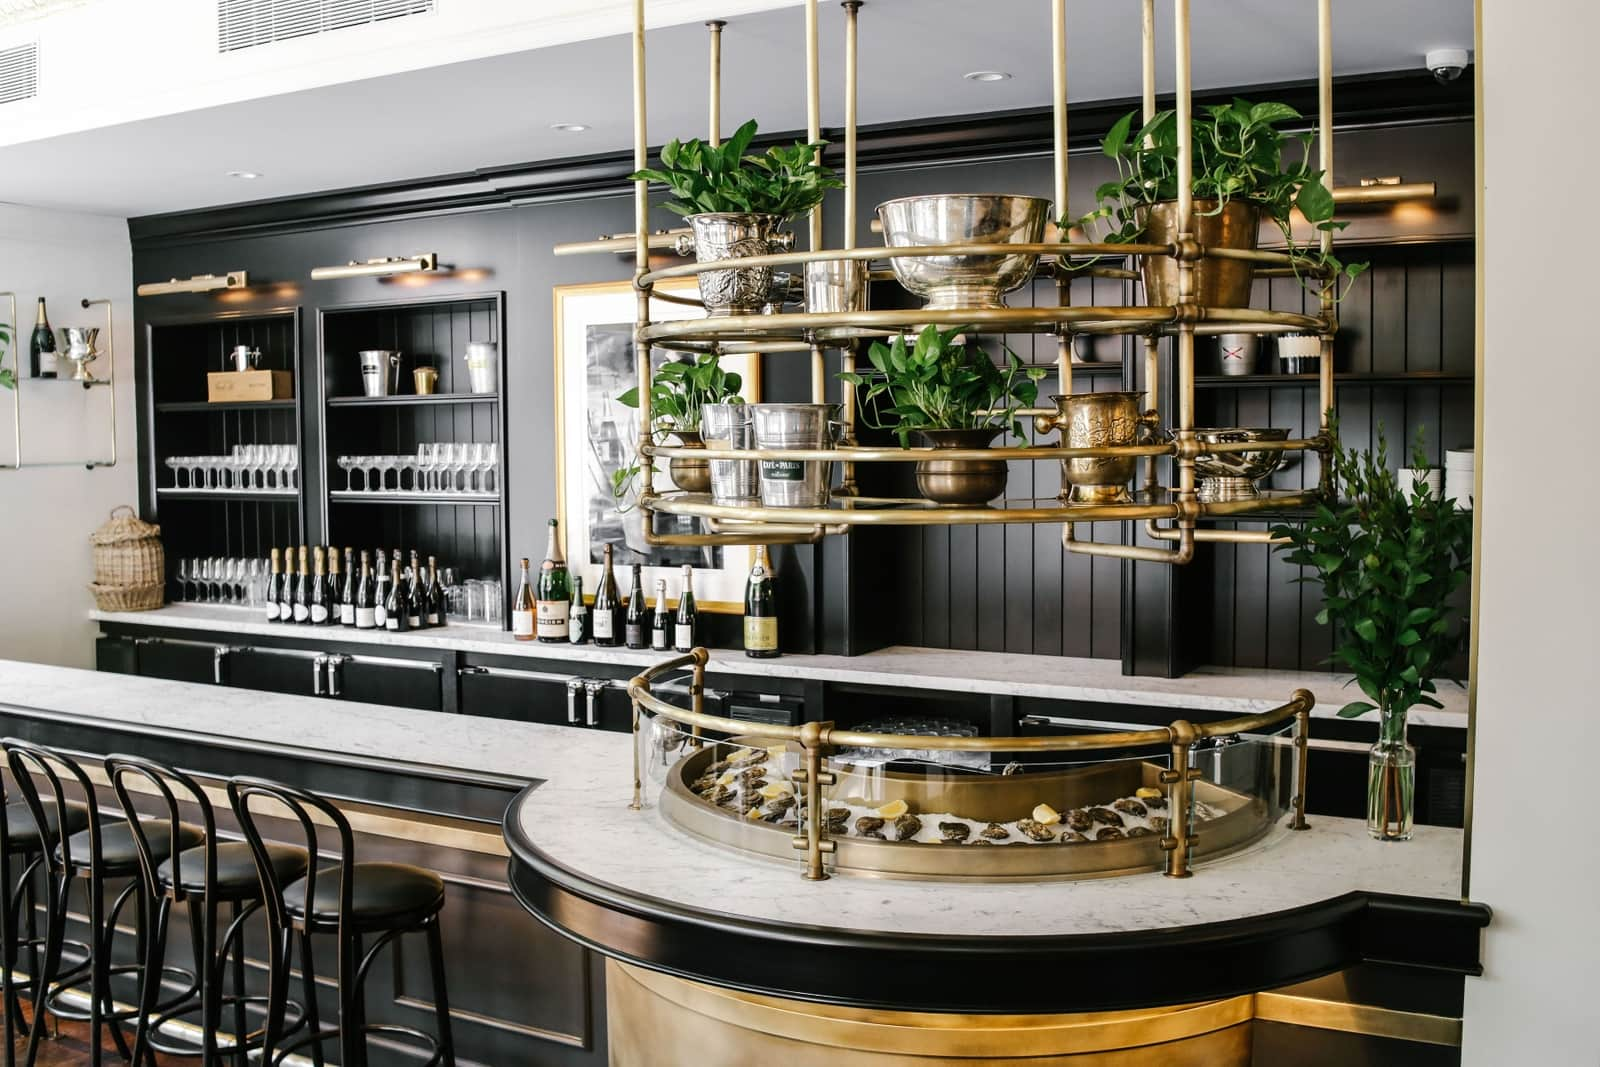 This All-Black Champagne & Oyster Bar in NYC Will Make Us Want To Toast Before New Year's Eve! oyster bar This All-Black Champagne & Oyster Bar in NYC Will Make Us Want To Toast Before New Year's Eve! 2